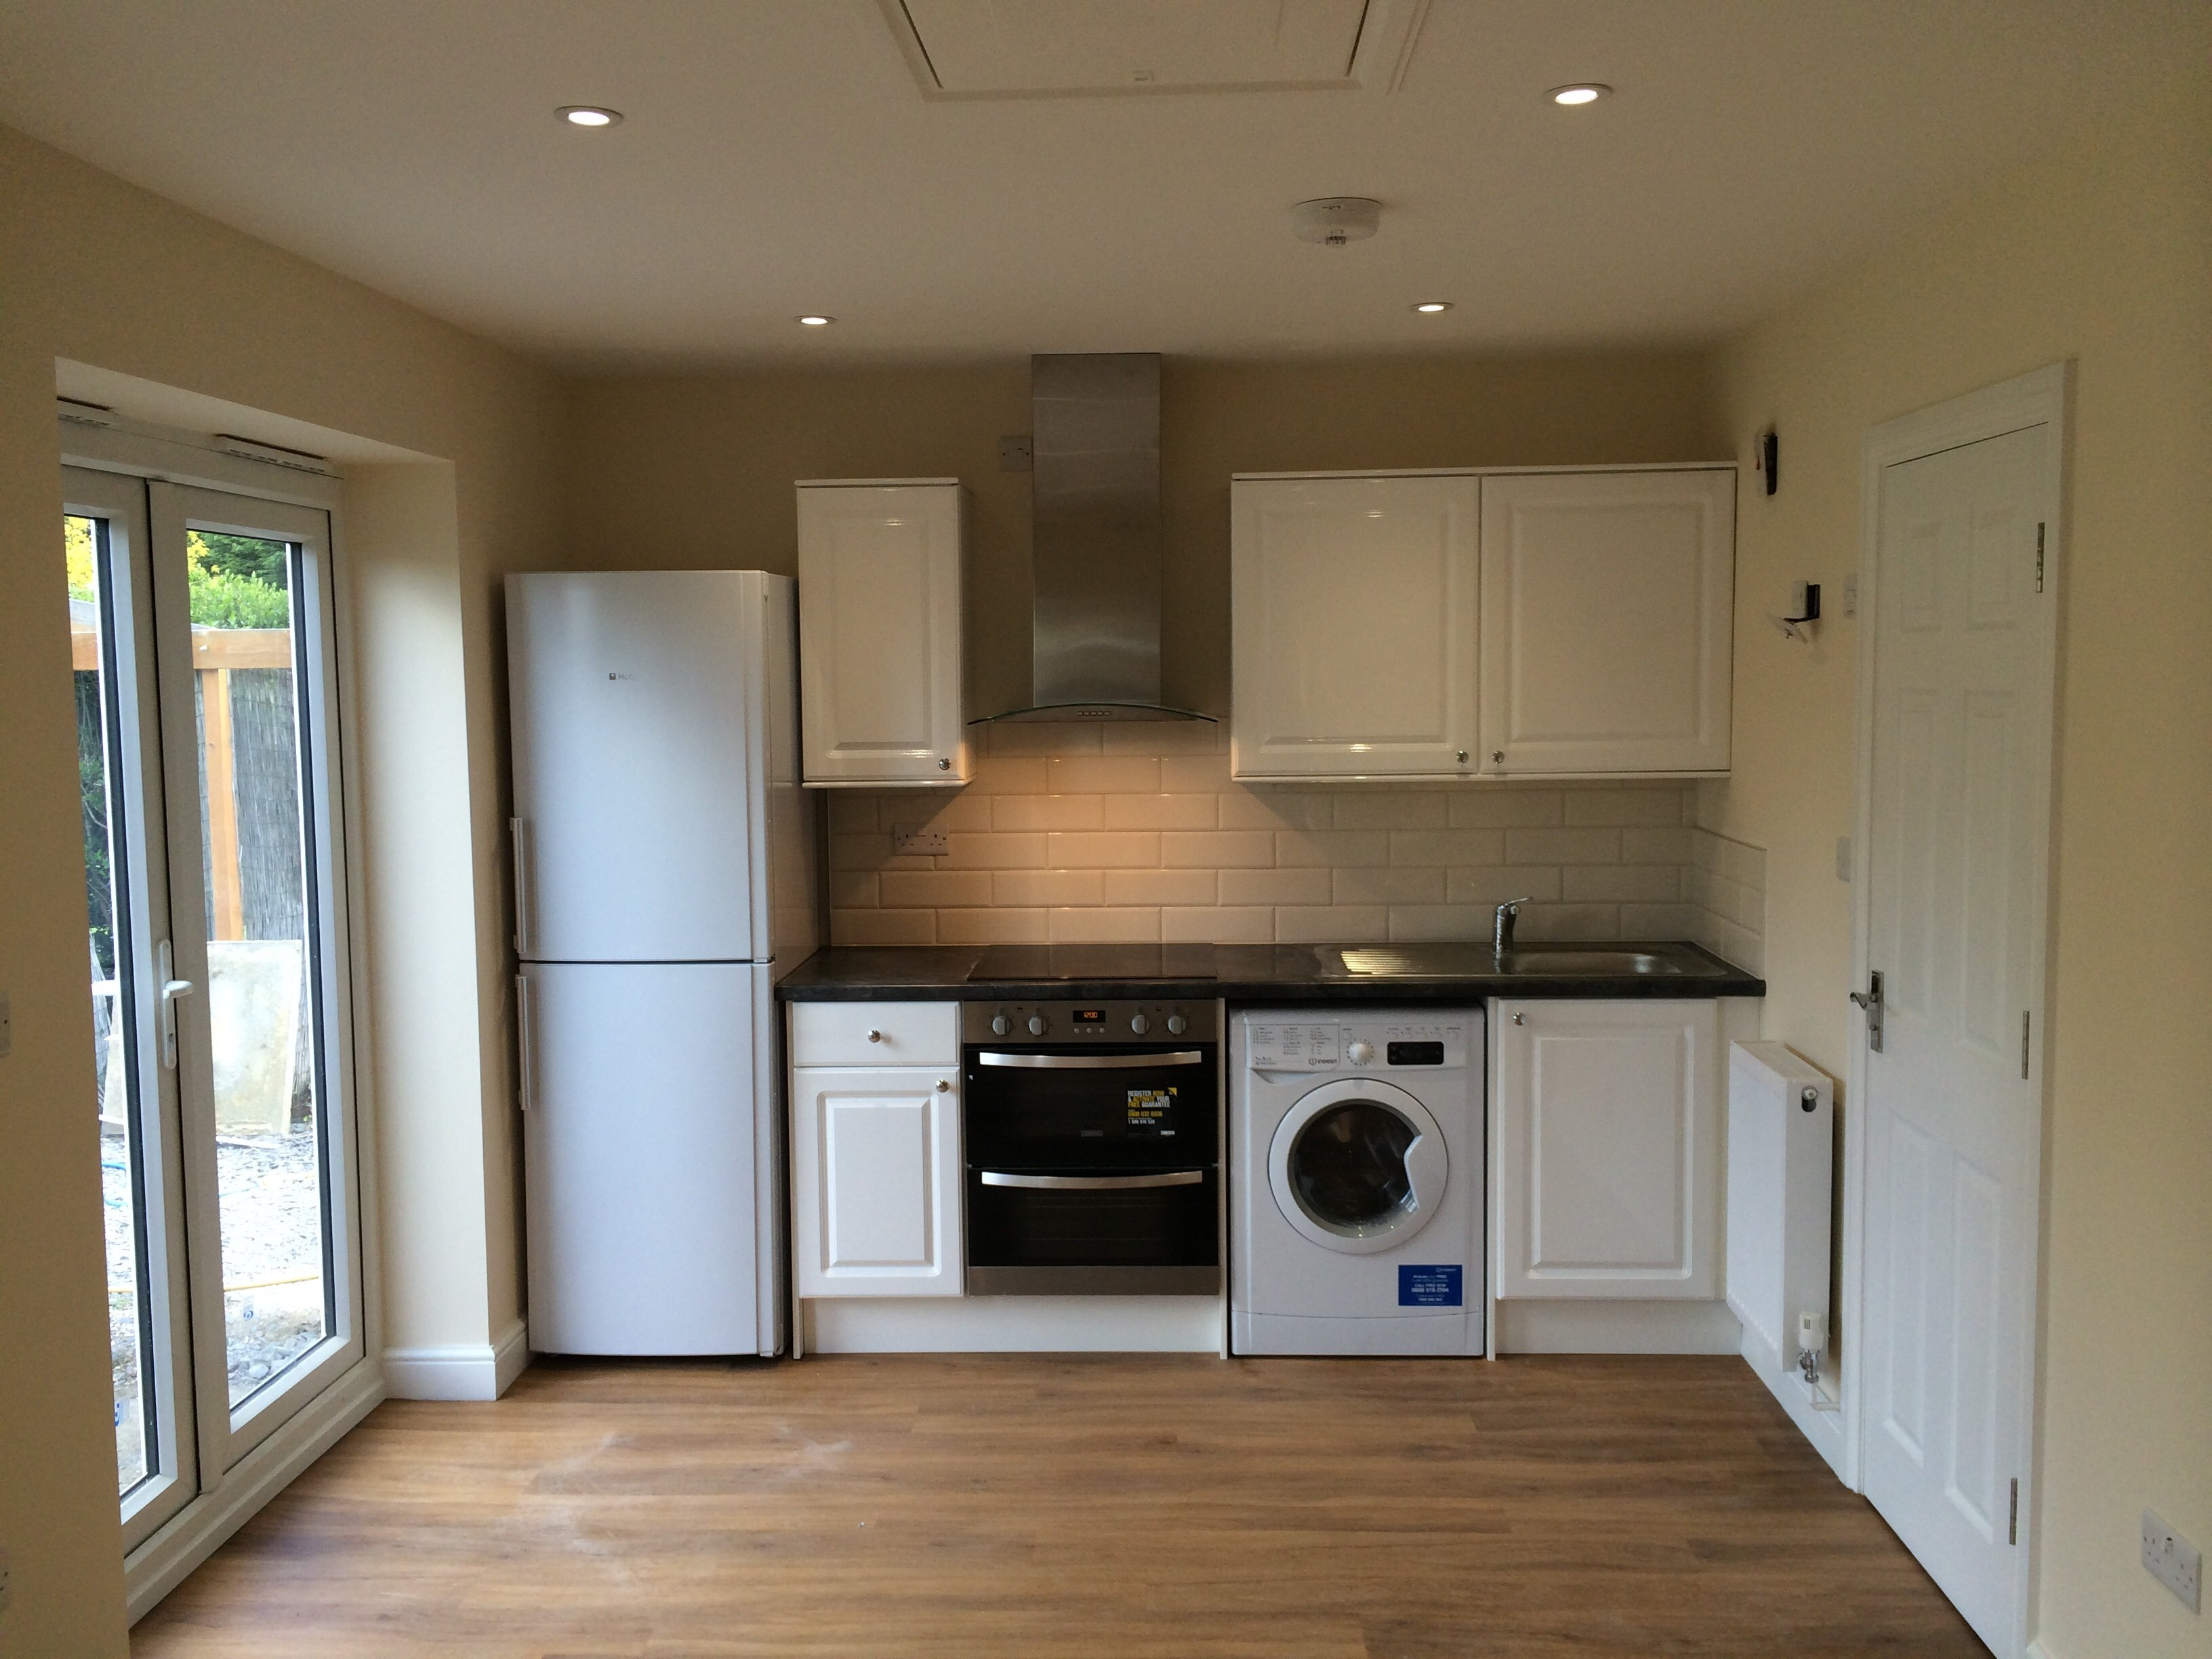 a new kitchen area in the self-contained flat/annexe